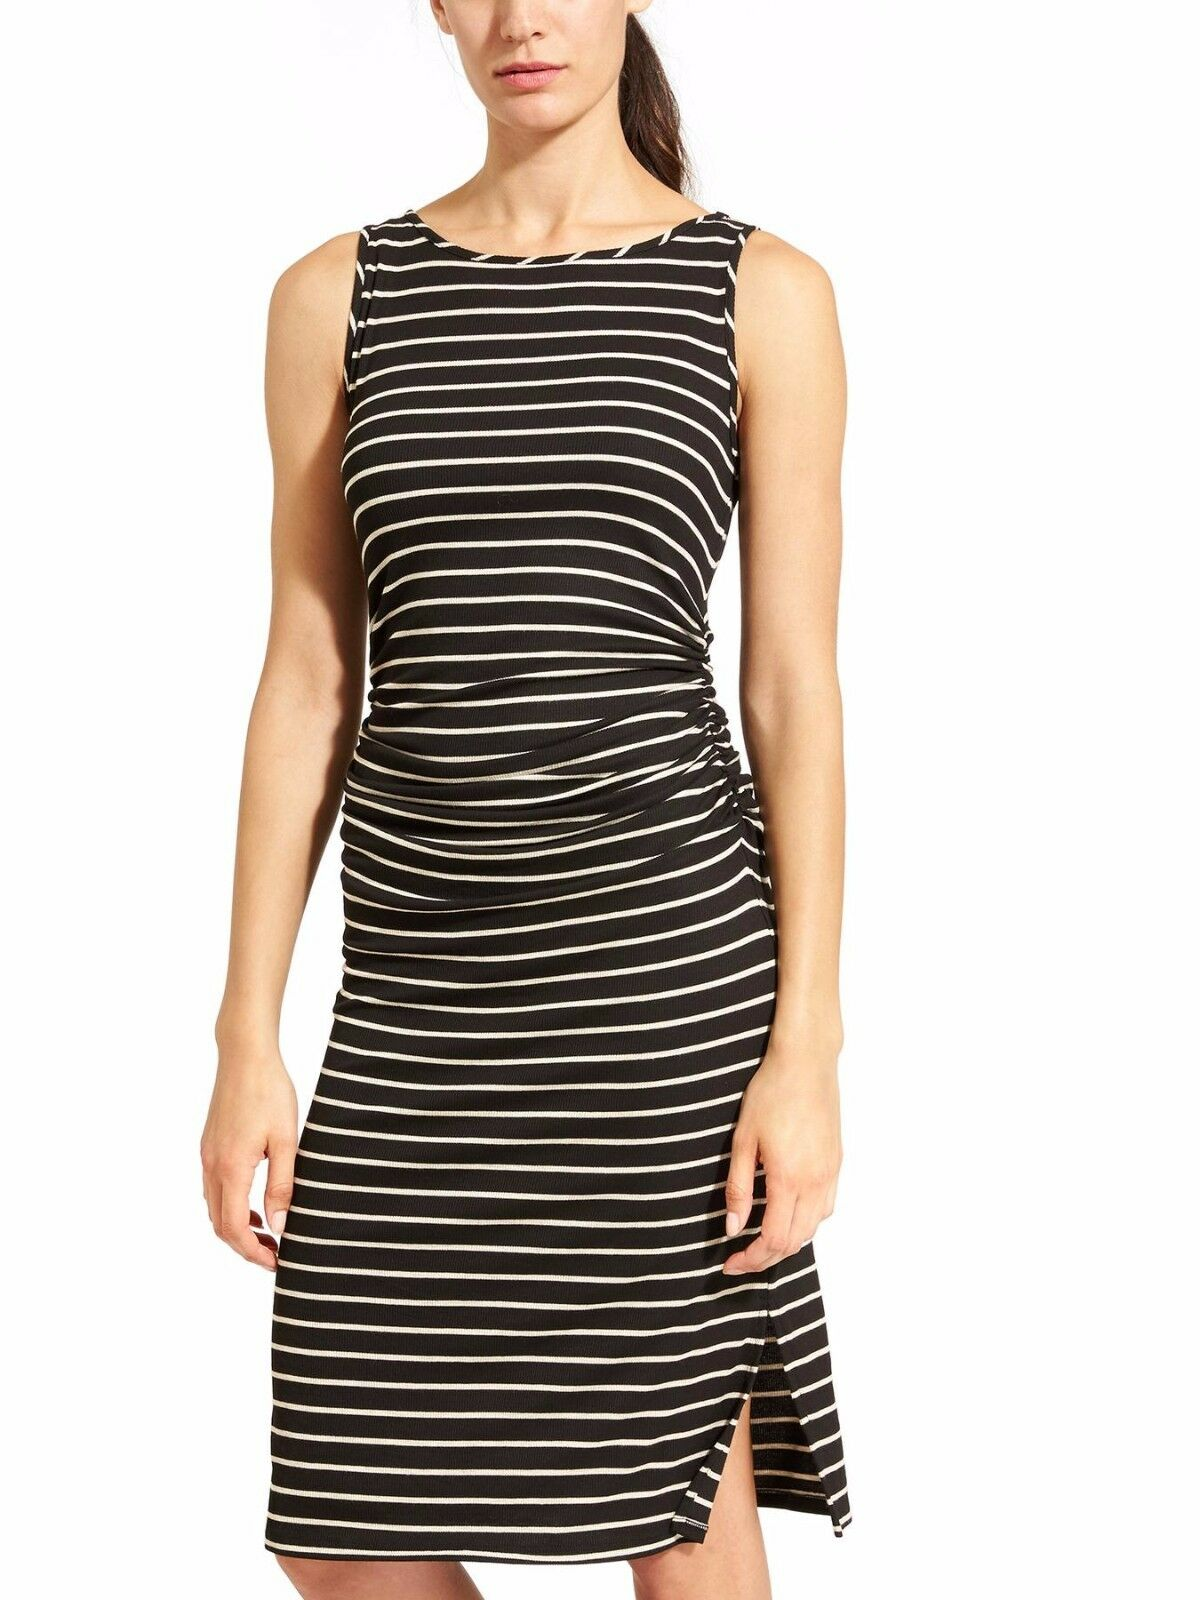 NWT Athleta Sunkissed Stripe Dress, schwarz Stripe Größe L    v66